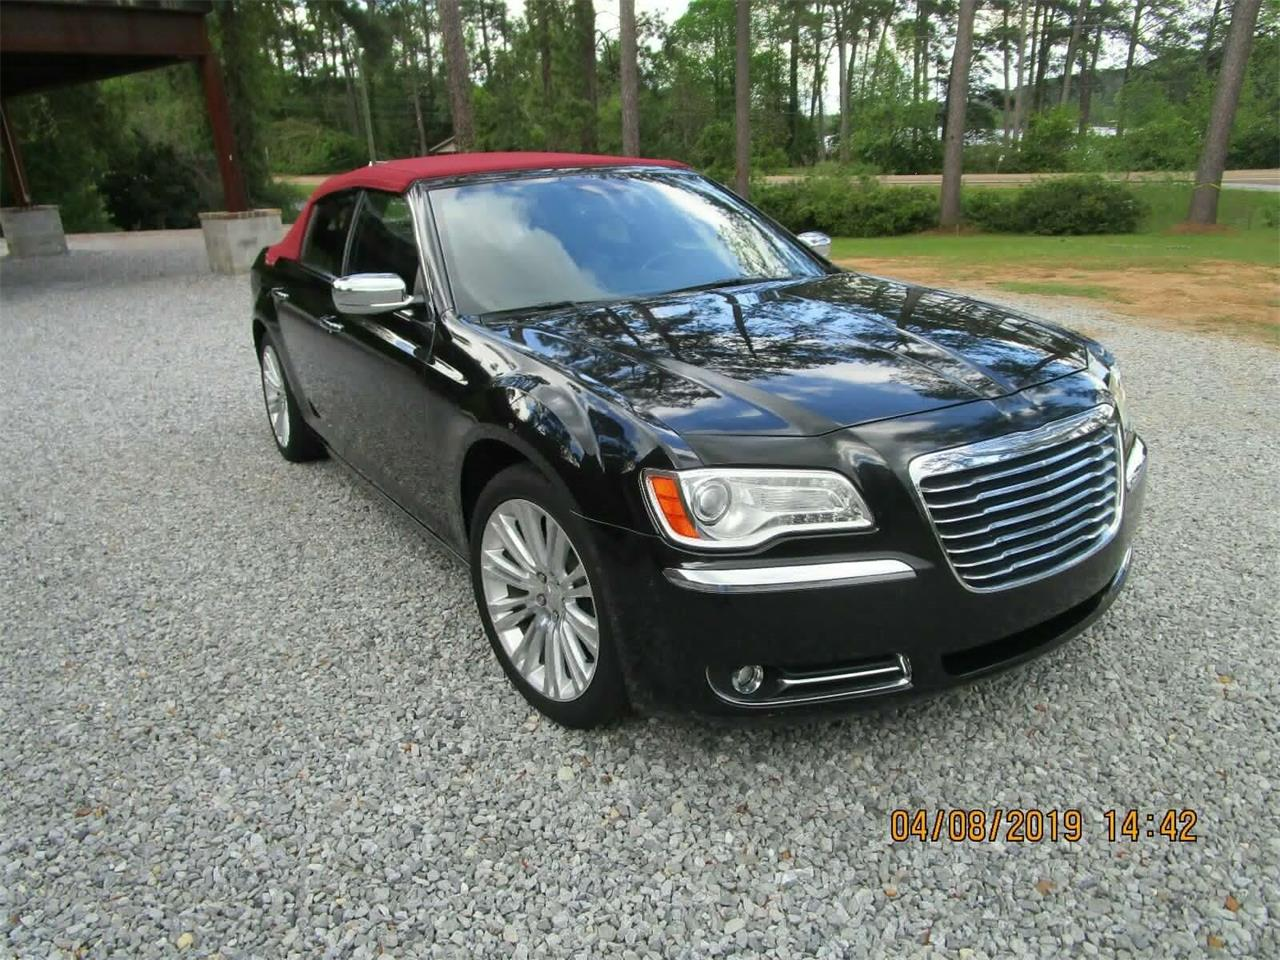 2011 Chrysler 300 for sale in Summit, MS – photo 4